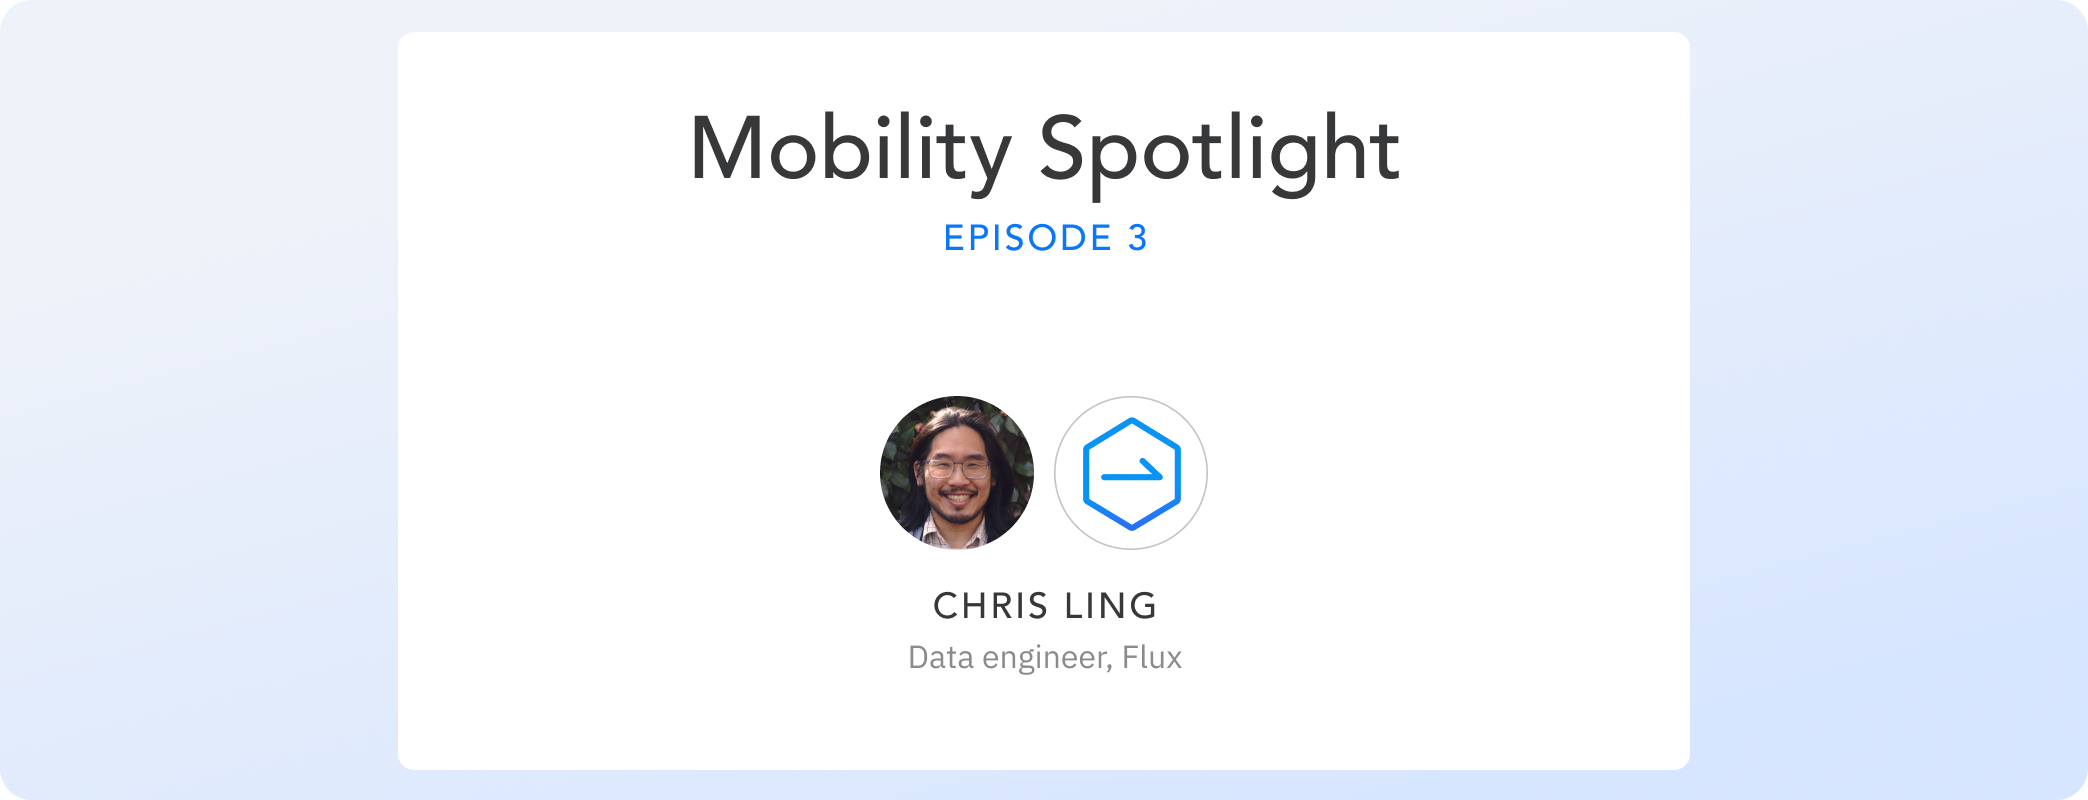 Episode 03: Chris Ling's journey from Law to Software Engineering